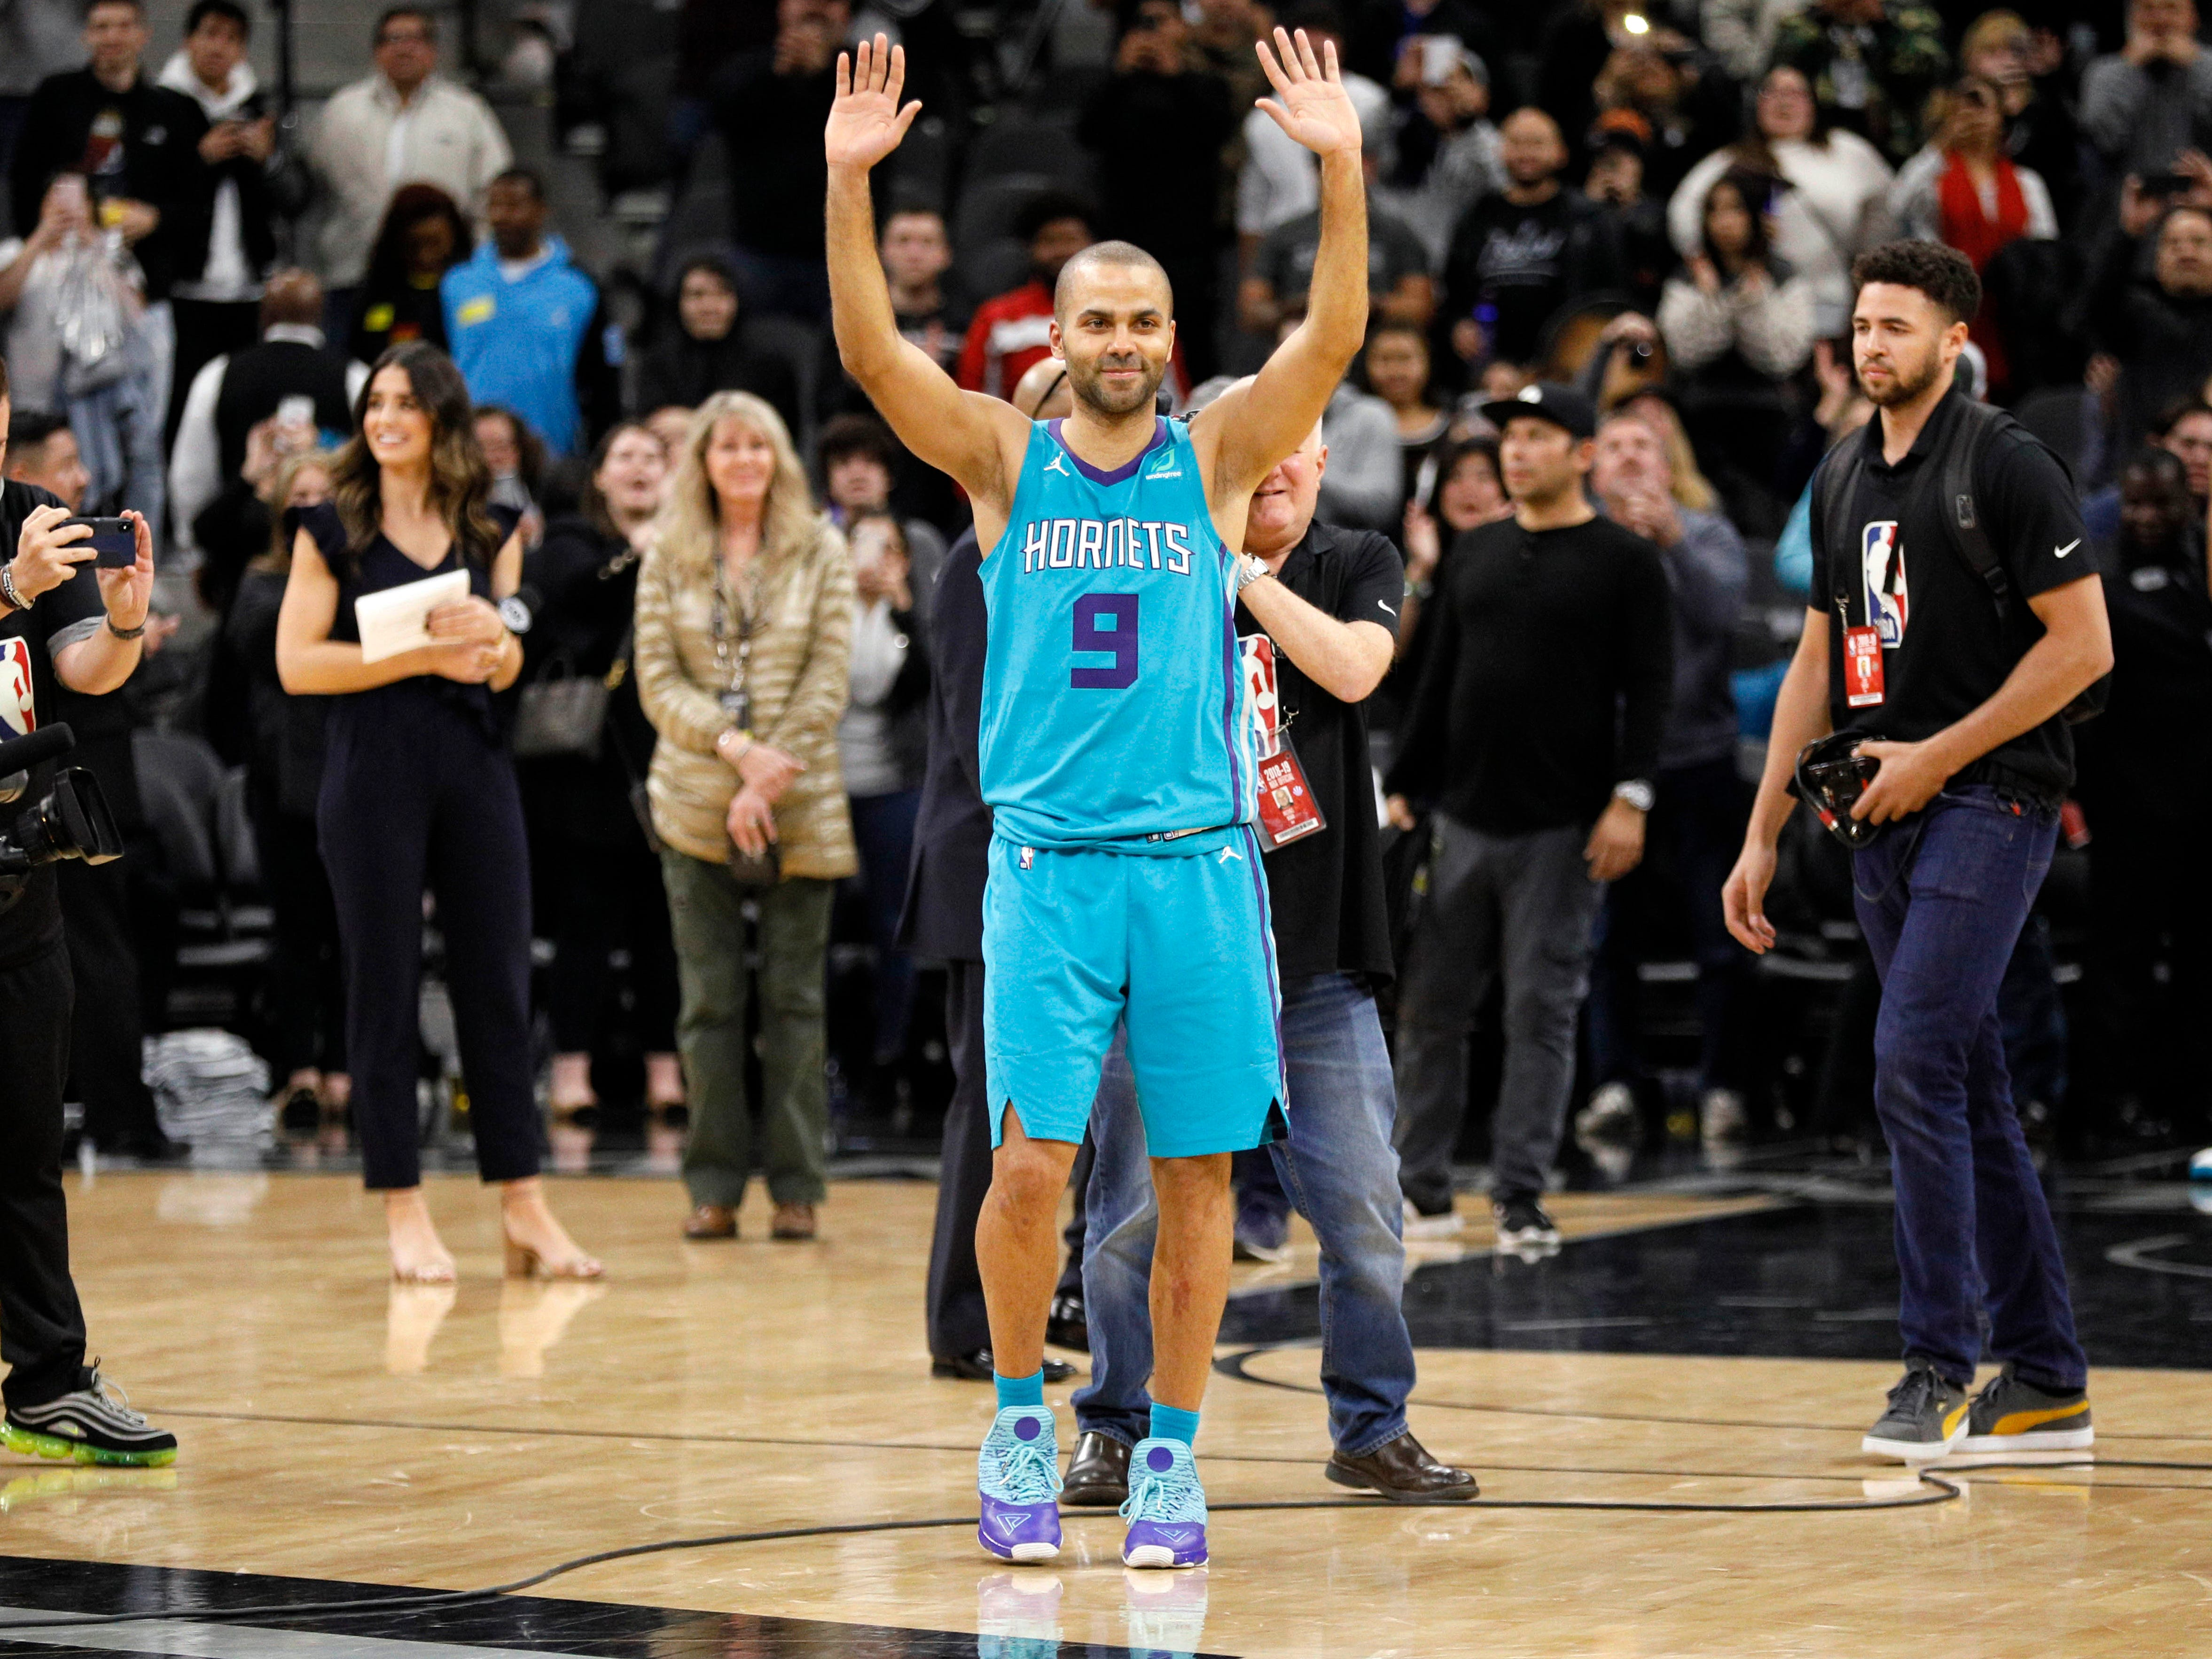 Jan. 14: Hornets guard Tony Parker waves to the crowd as he leaves the floor after the four-time champ's first game back in San Antonio as a member of the visiting team.